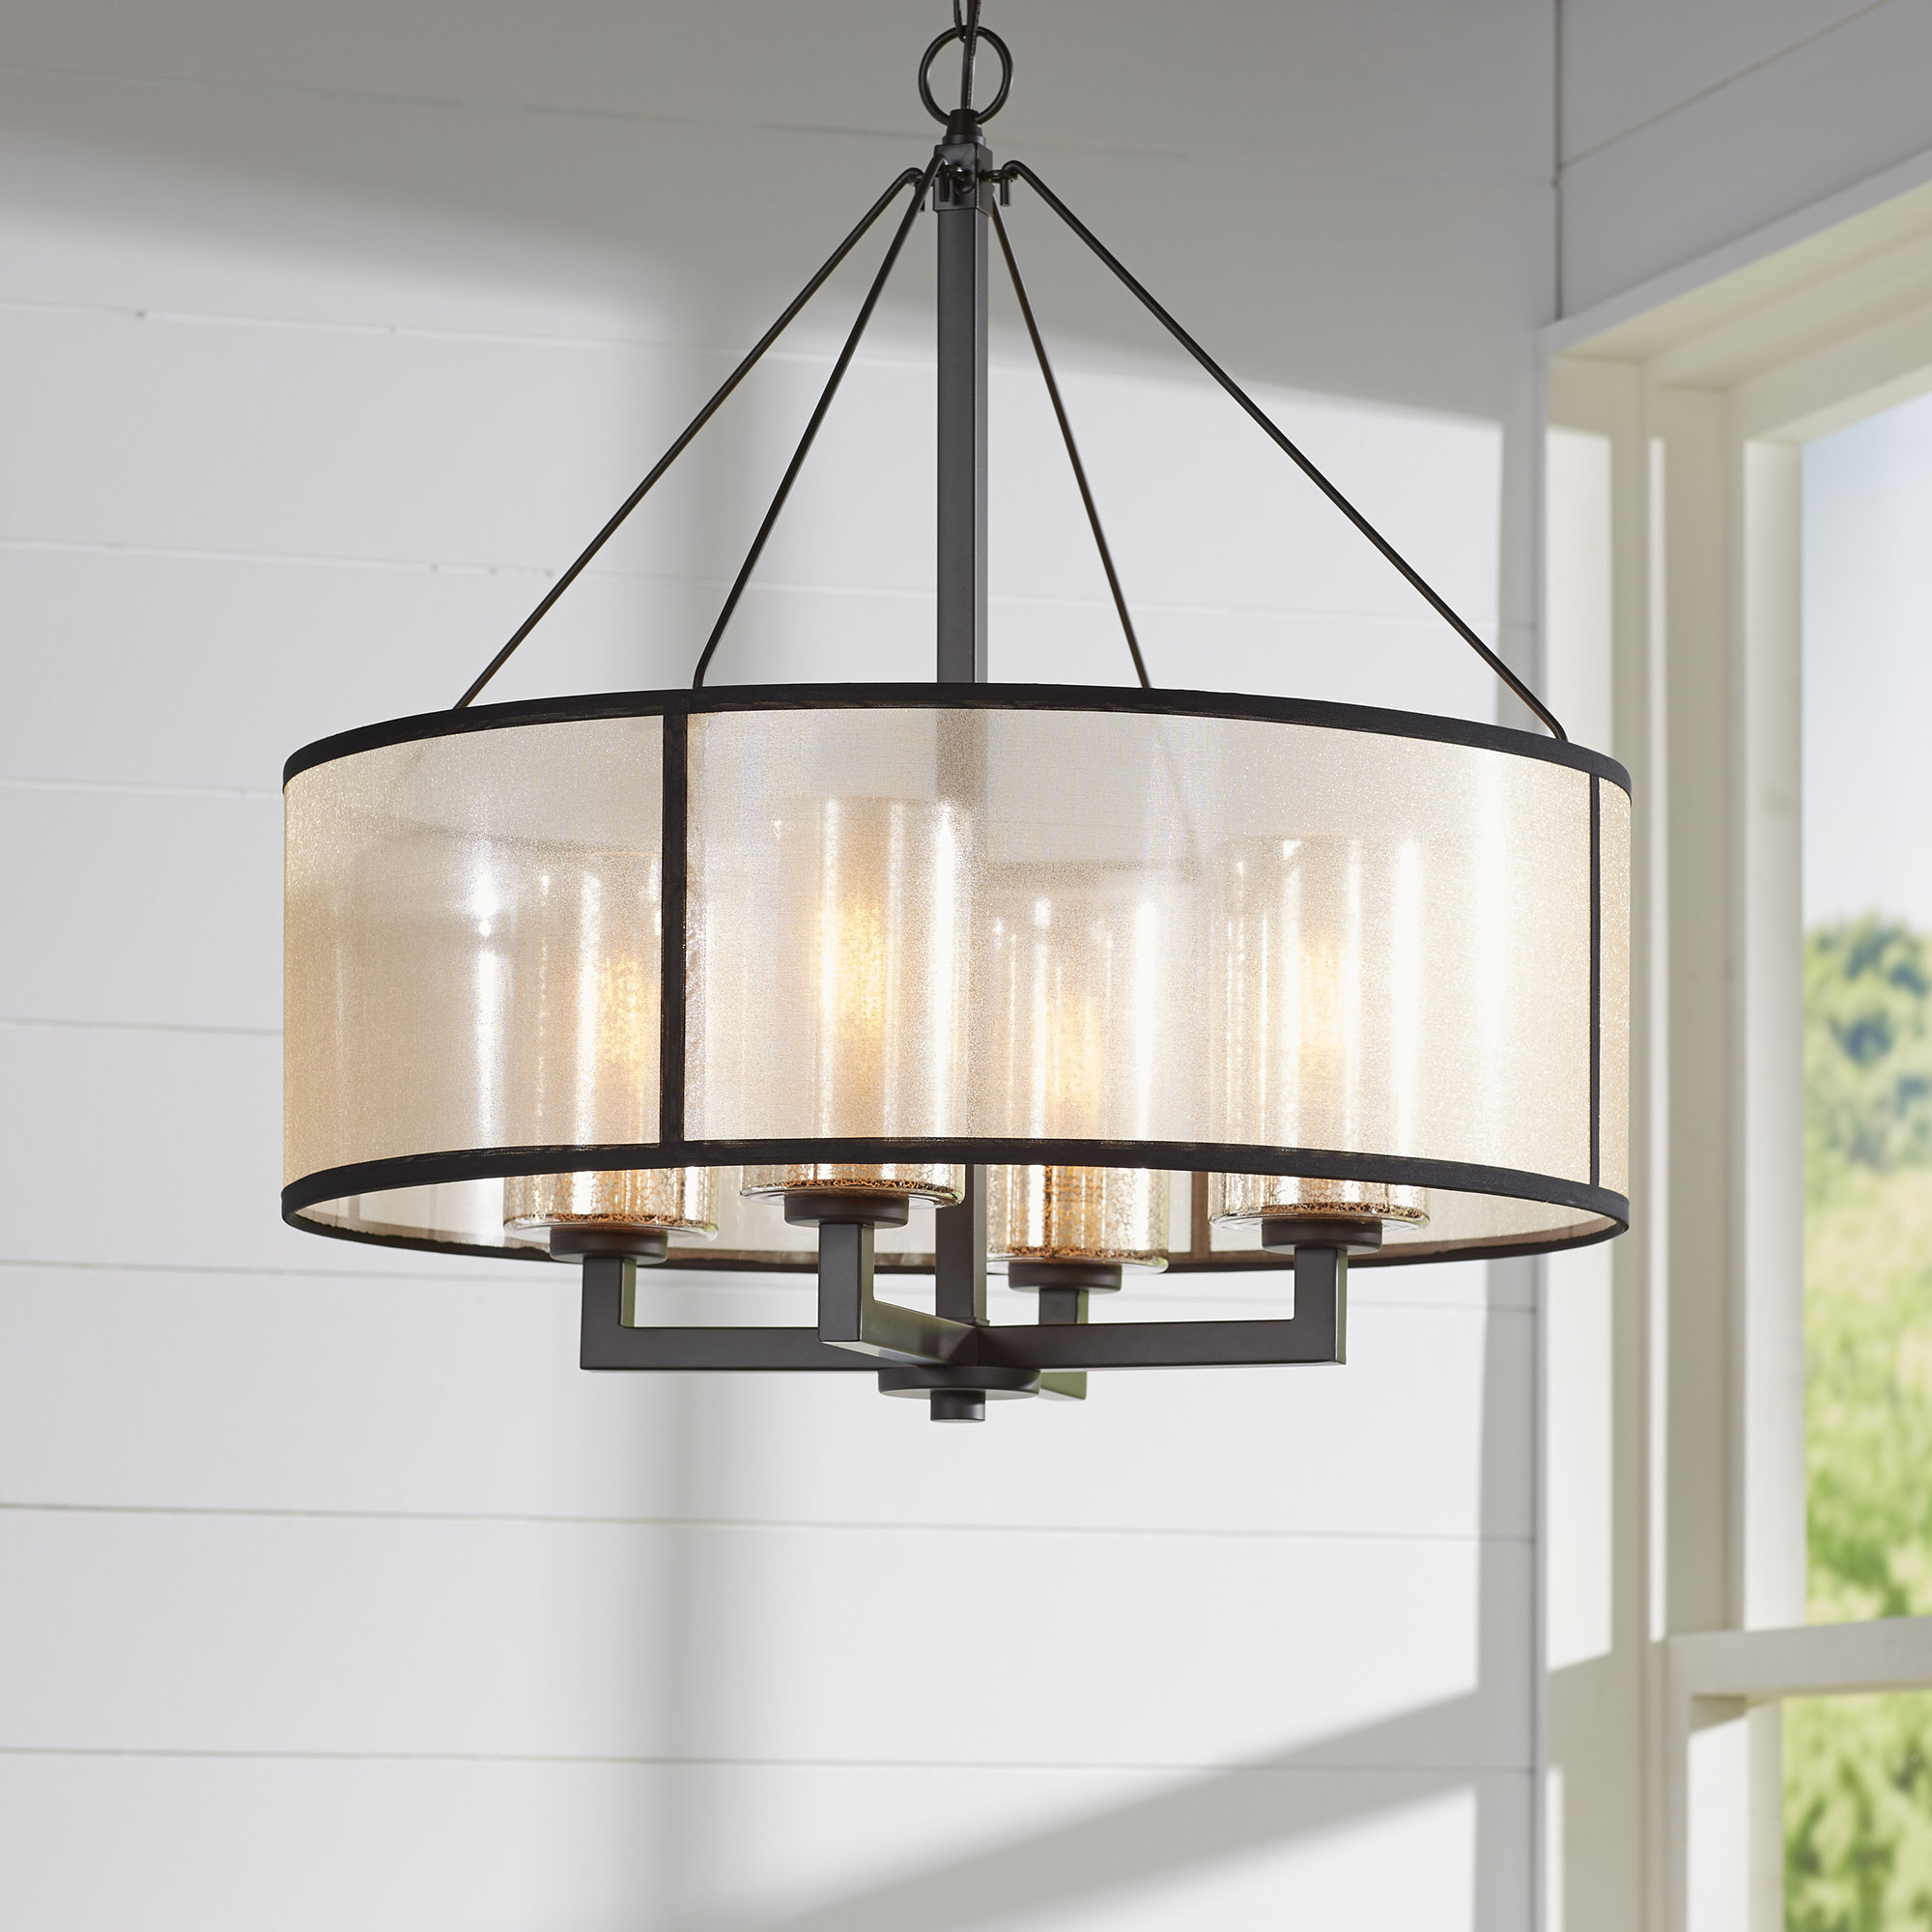 Dailey 4 Light Drum Chandelier Intended For Trendy Dailey 4 Light Drum Chandeliers (Gallery 1 of 20)